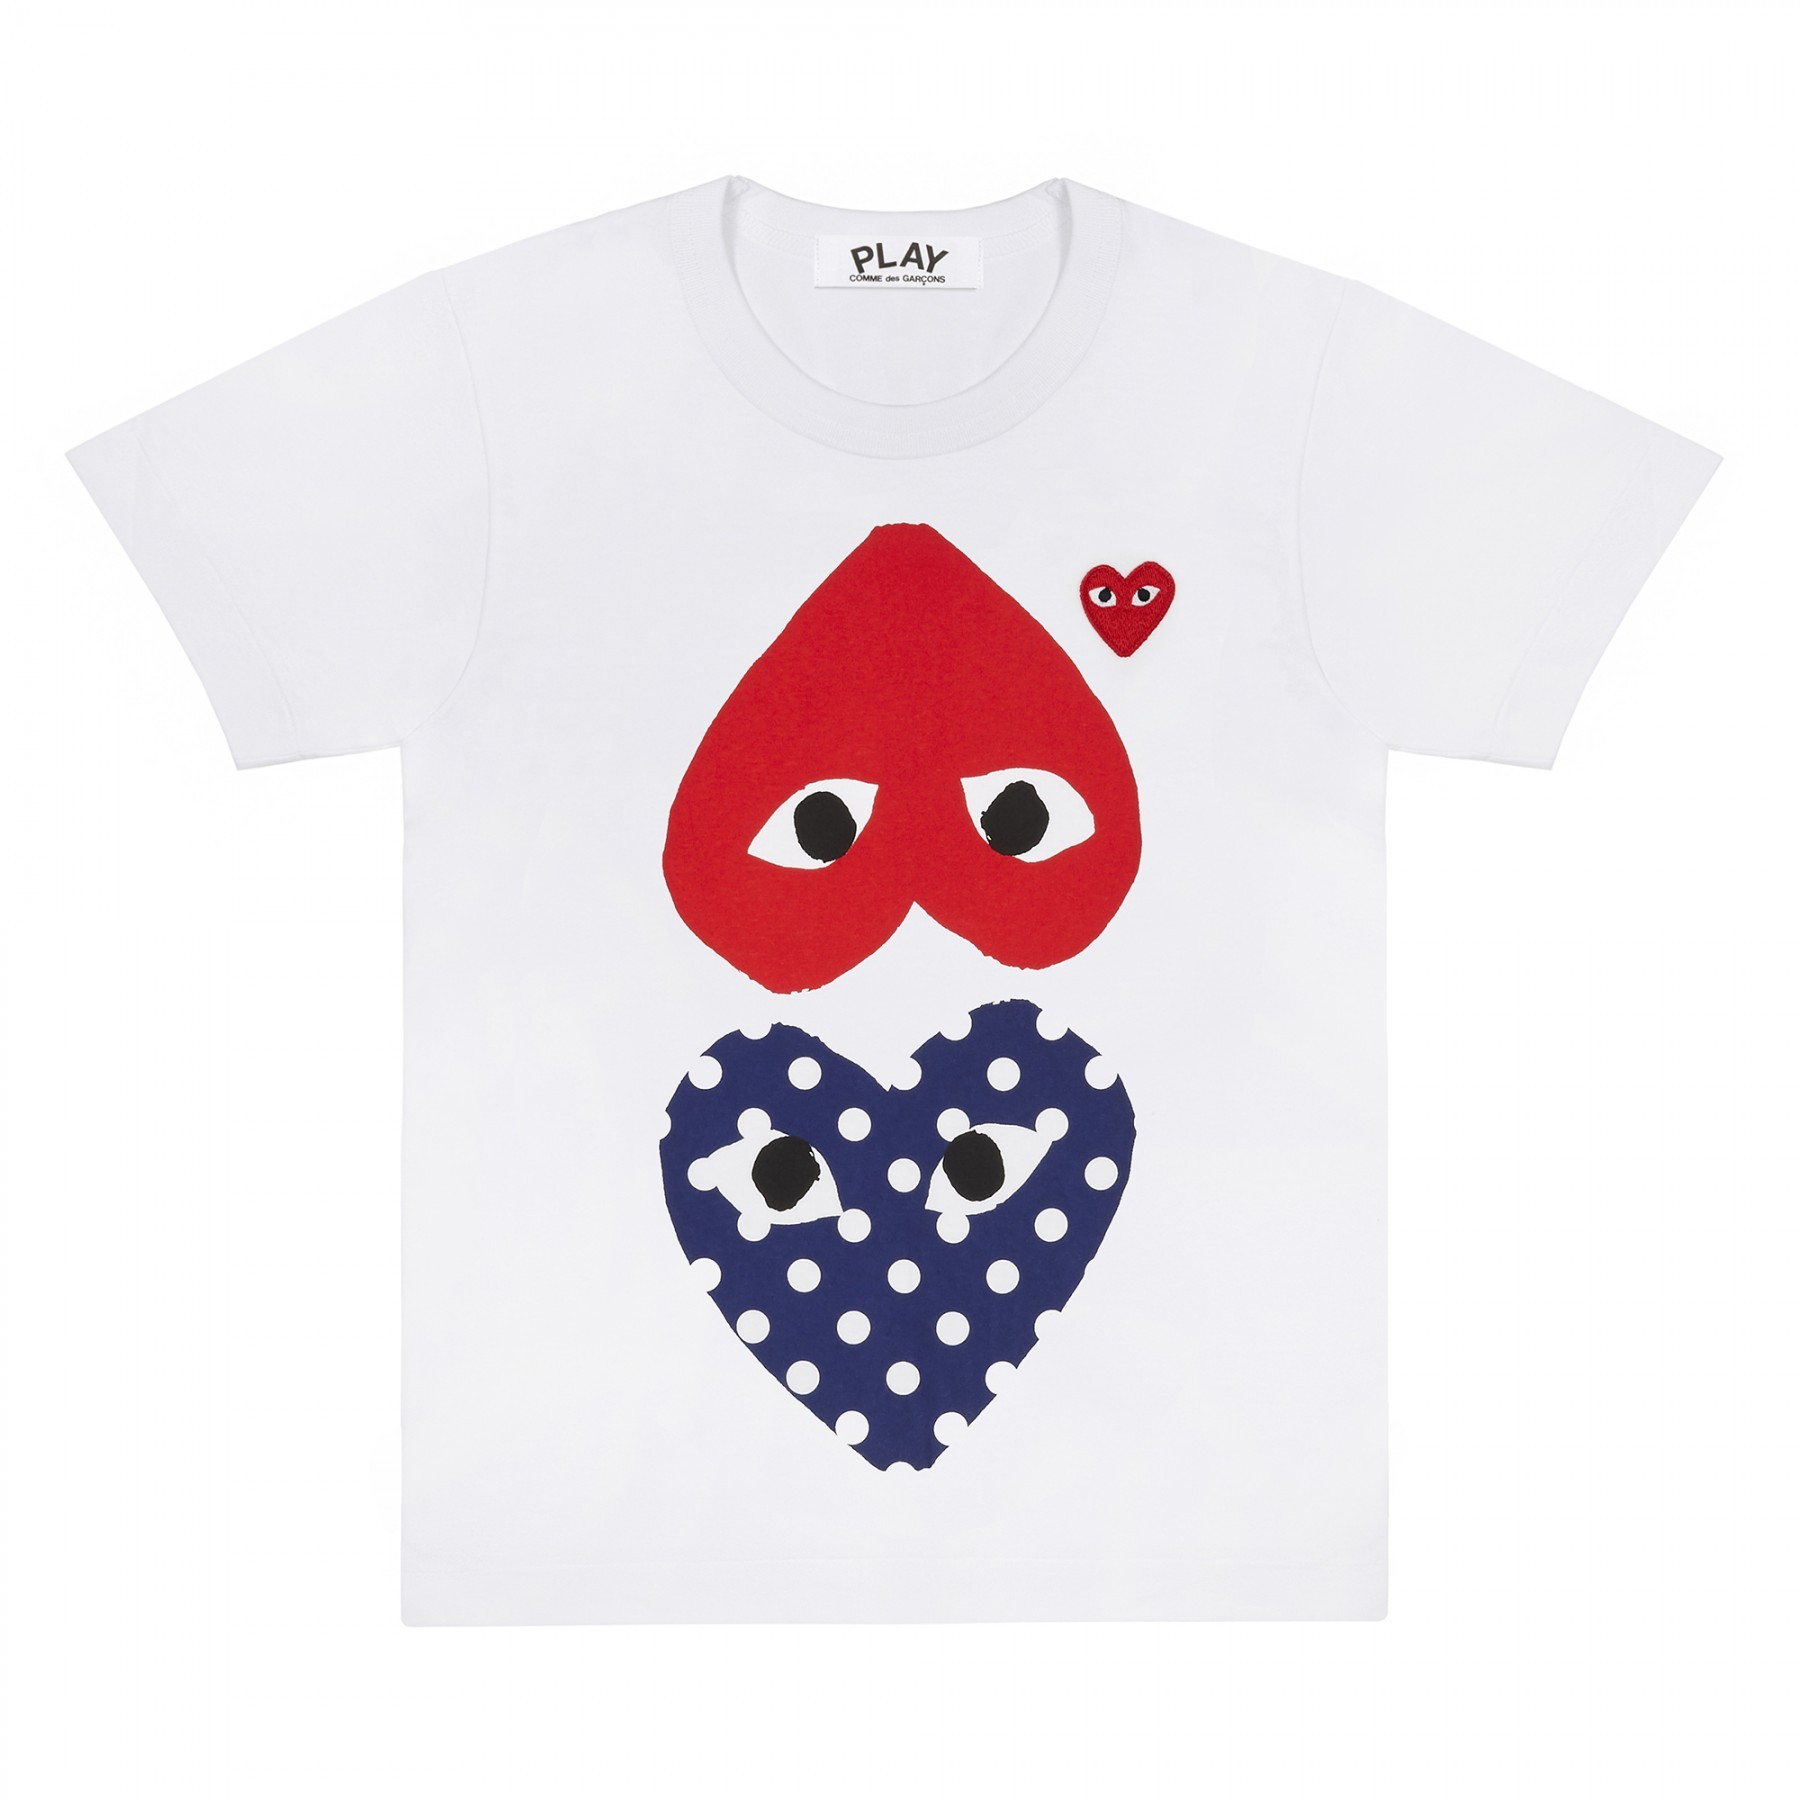 COMME DES GARÇONS PLAY - COMME DES GARÇONS PLAY WHITE WOMEN T-SHIRT WITH RED ce8e43f4a6